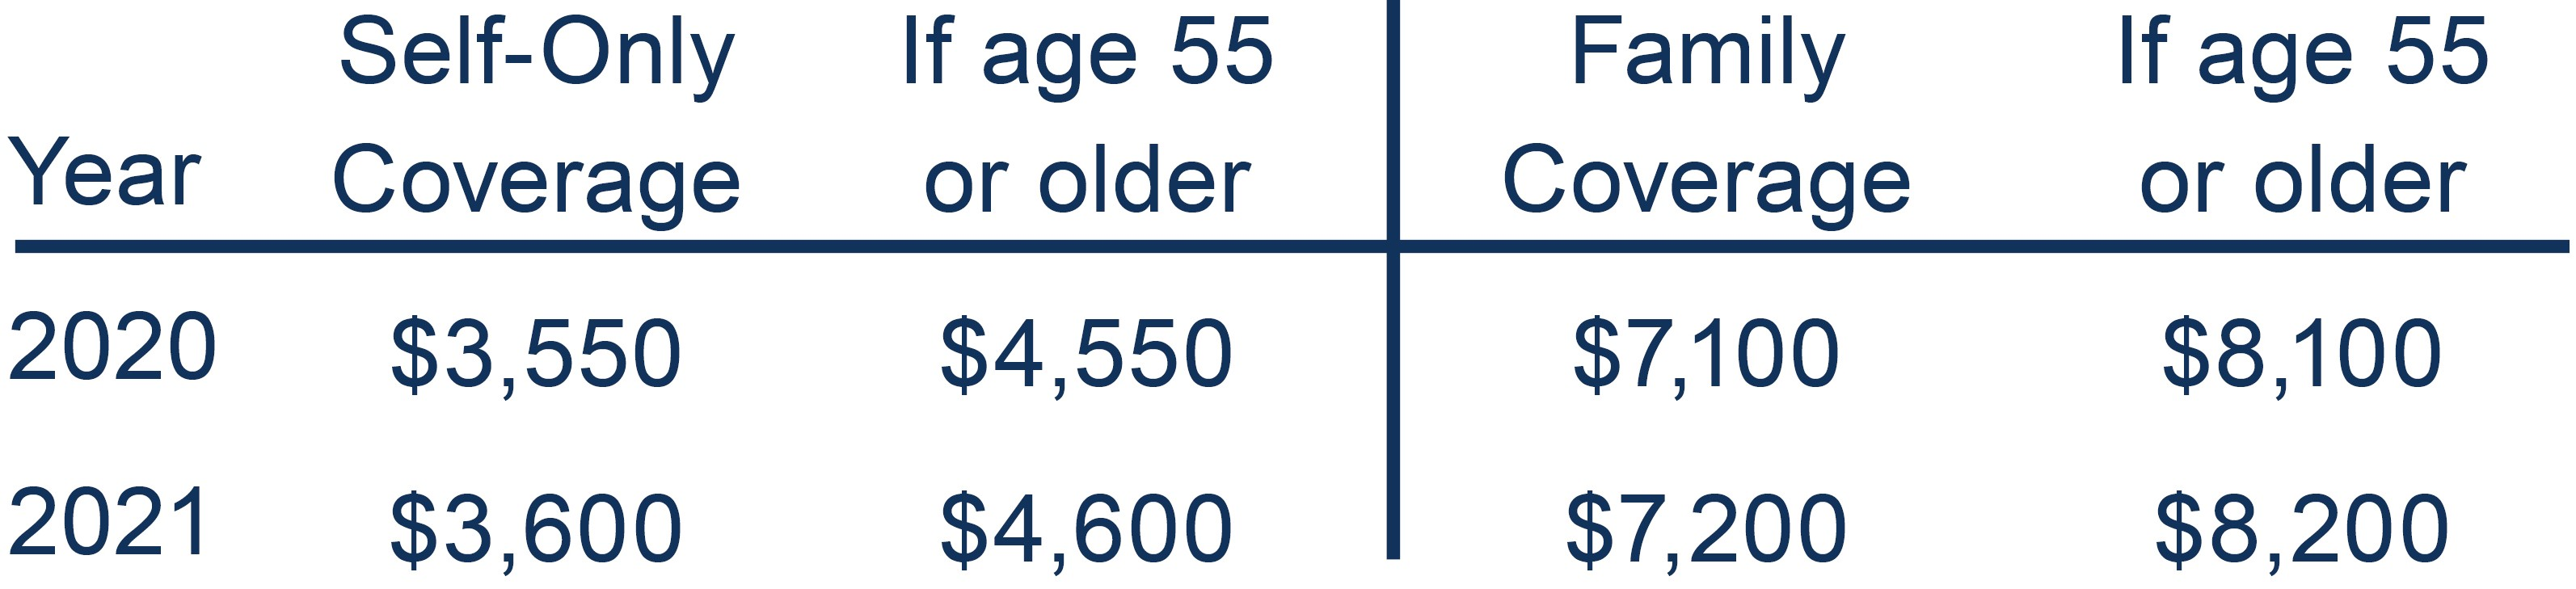 HSA Contribution limits. $3,600 self only coverage. $4,600 for 55 and older. $7,200 family coverage. $8,200 55 and older family coverage